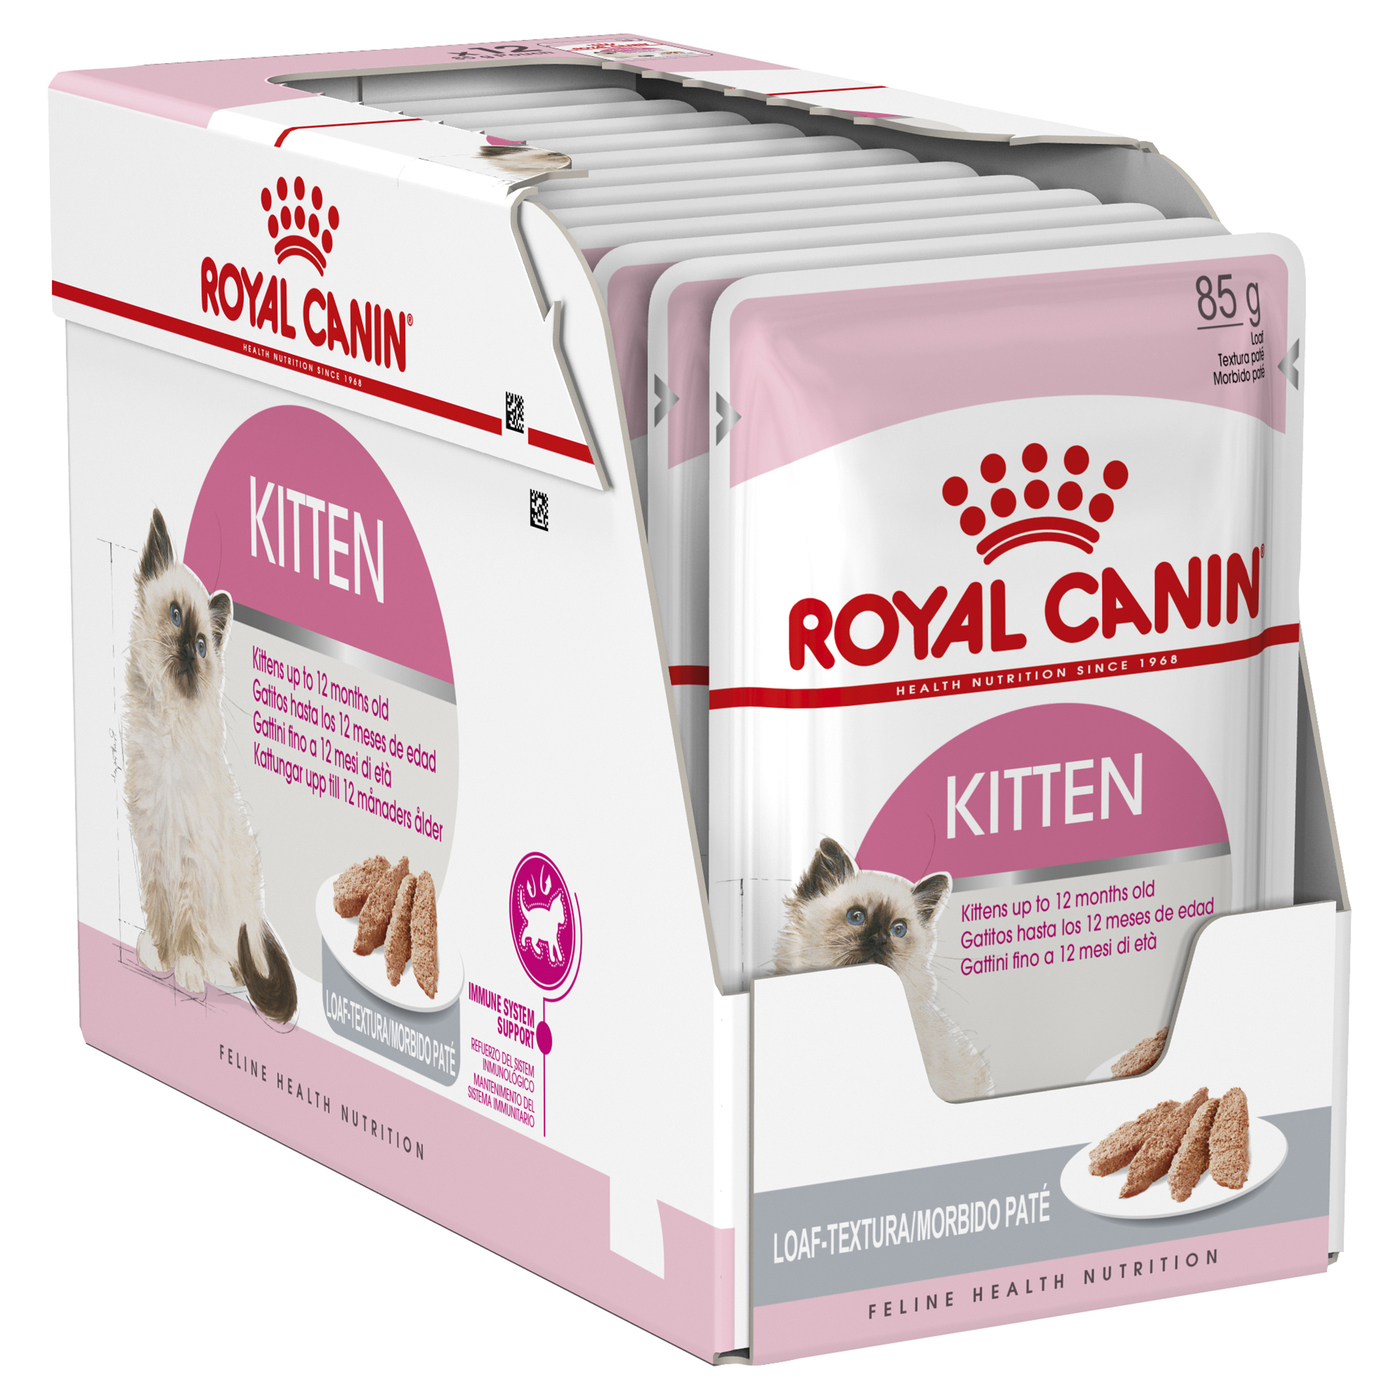 Royal Canin Instinctive Loaf Moist Kitten Food (up to 12 months) x 12 Pouches image 1